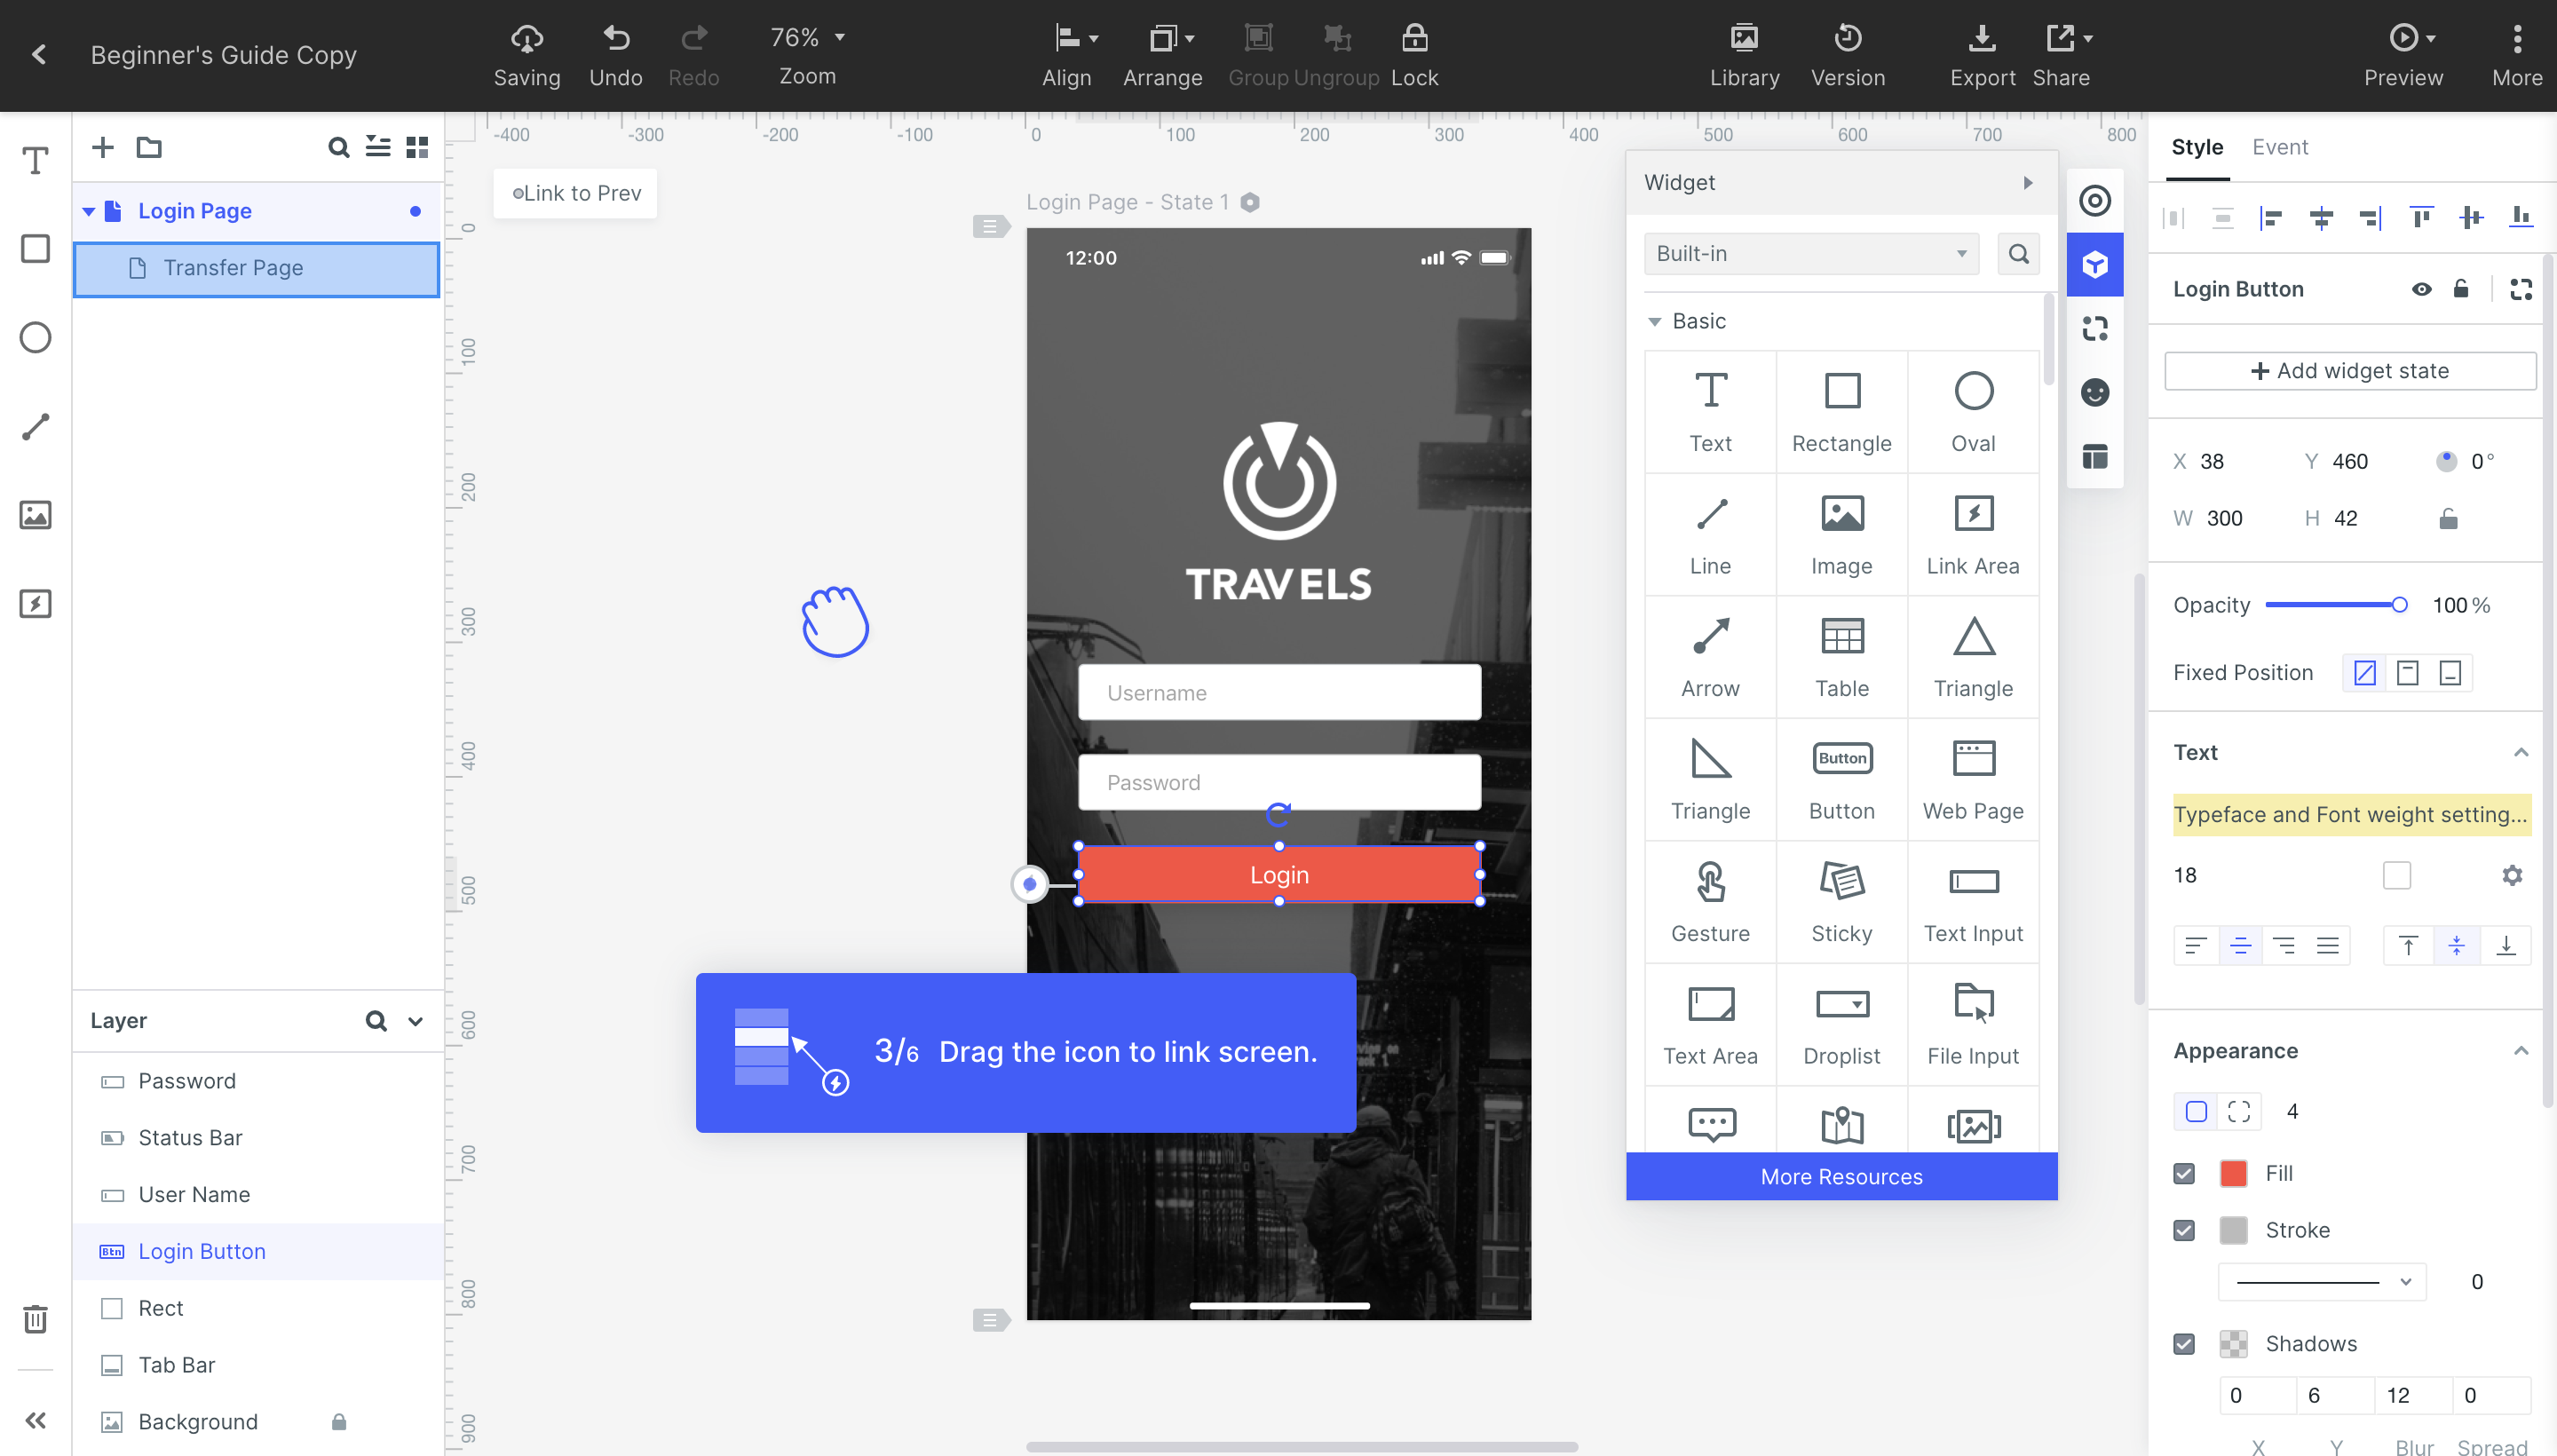 Onboarding feature that helps users to learn quickly.